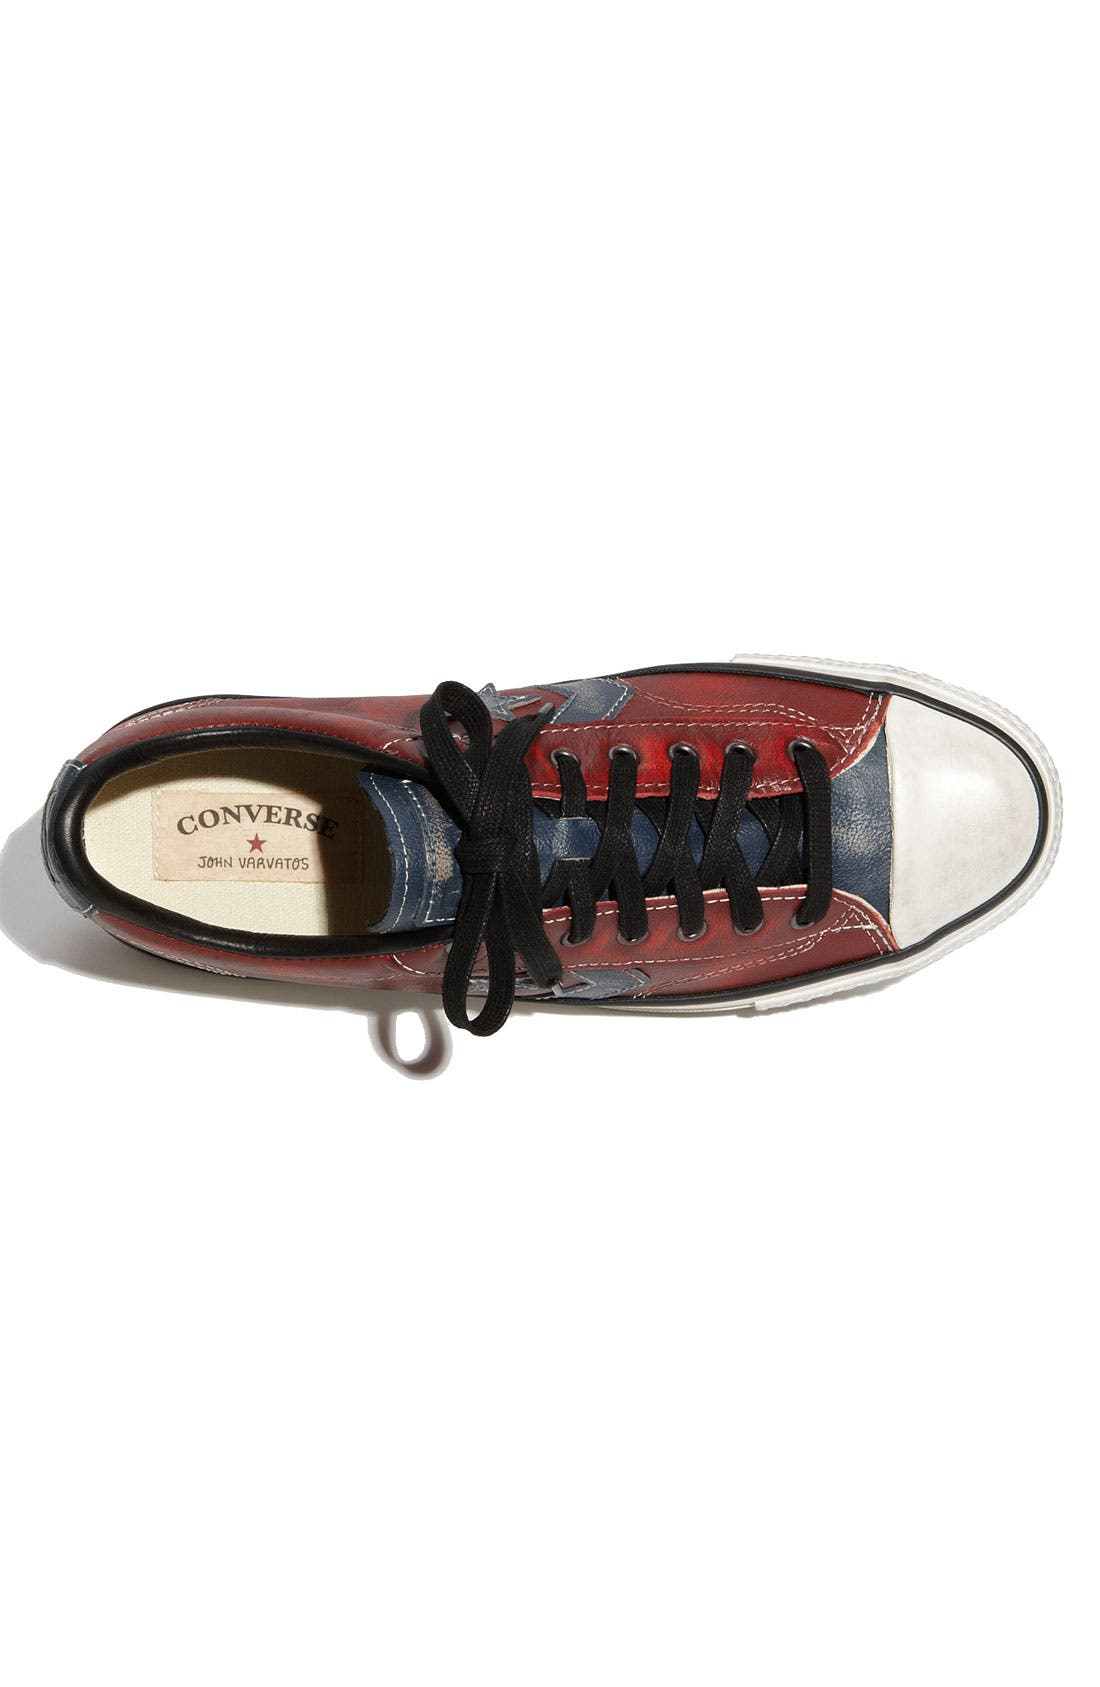 'Star Player' Leather Sneaker,                             Alternate thumbnail 2, color,                             Red / Blue